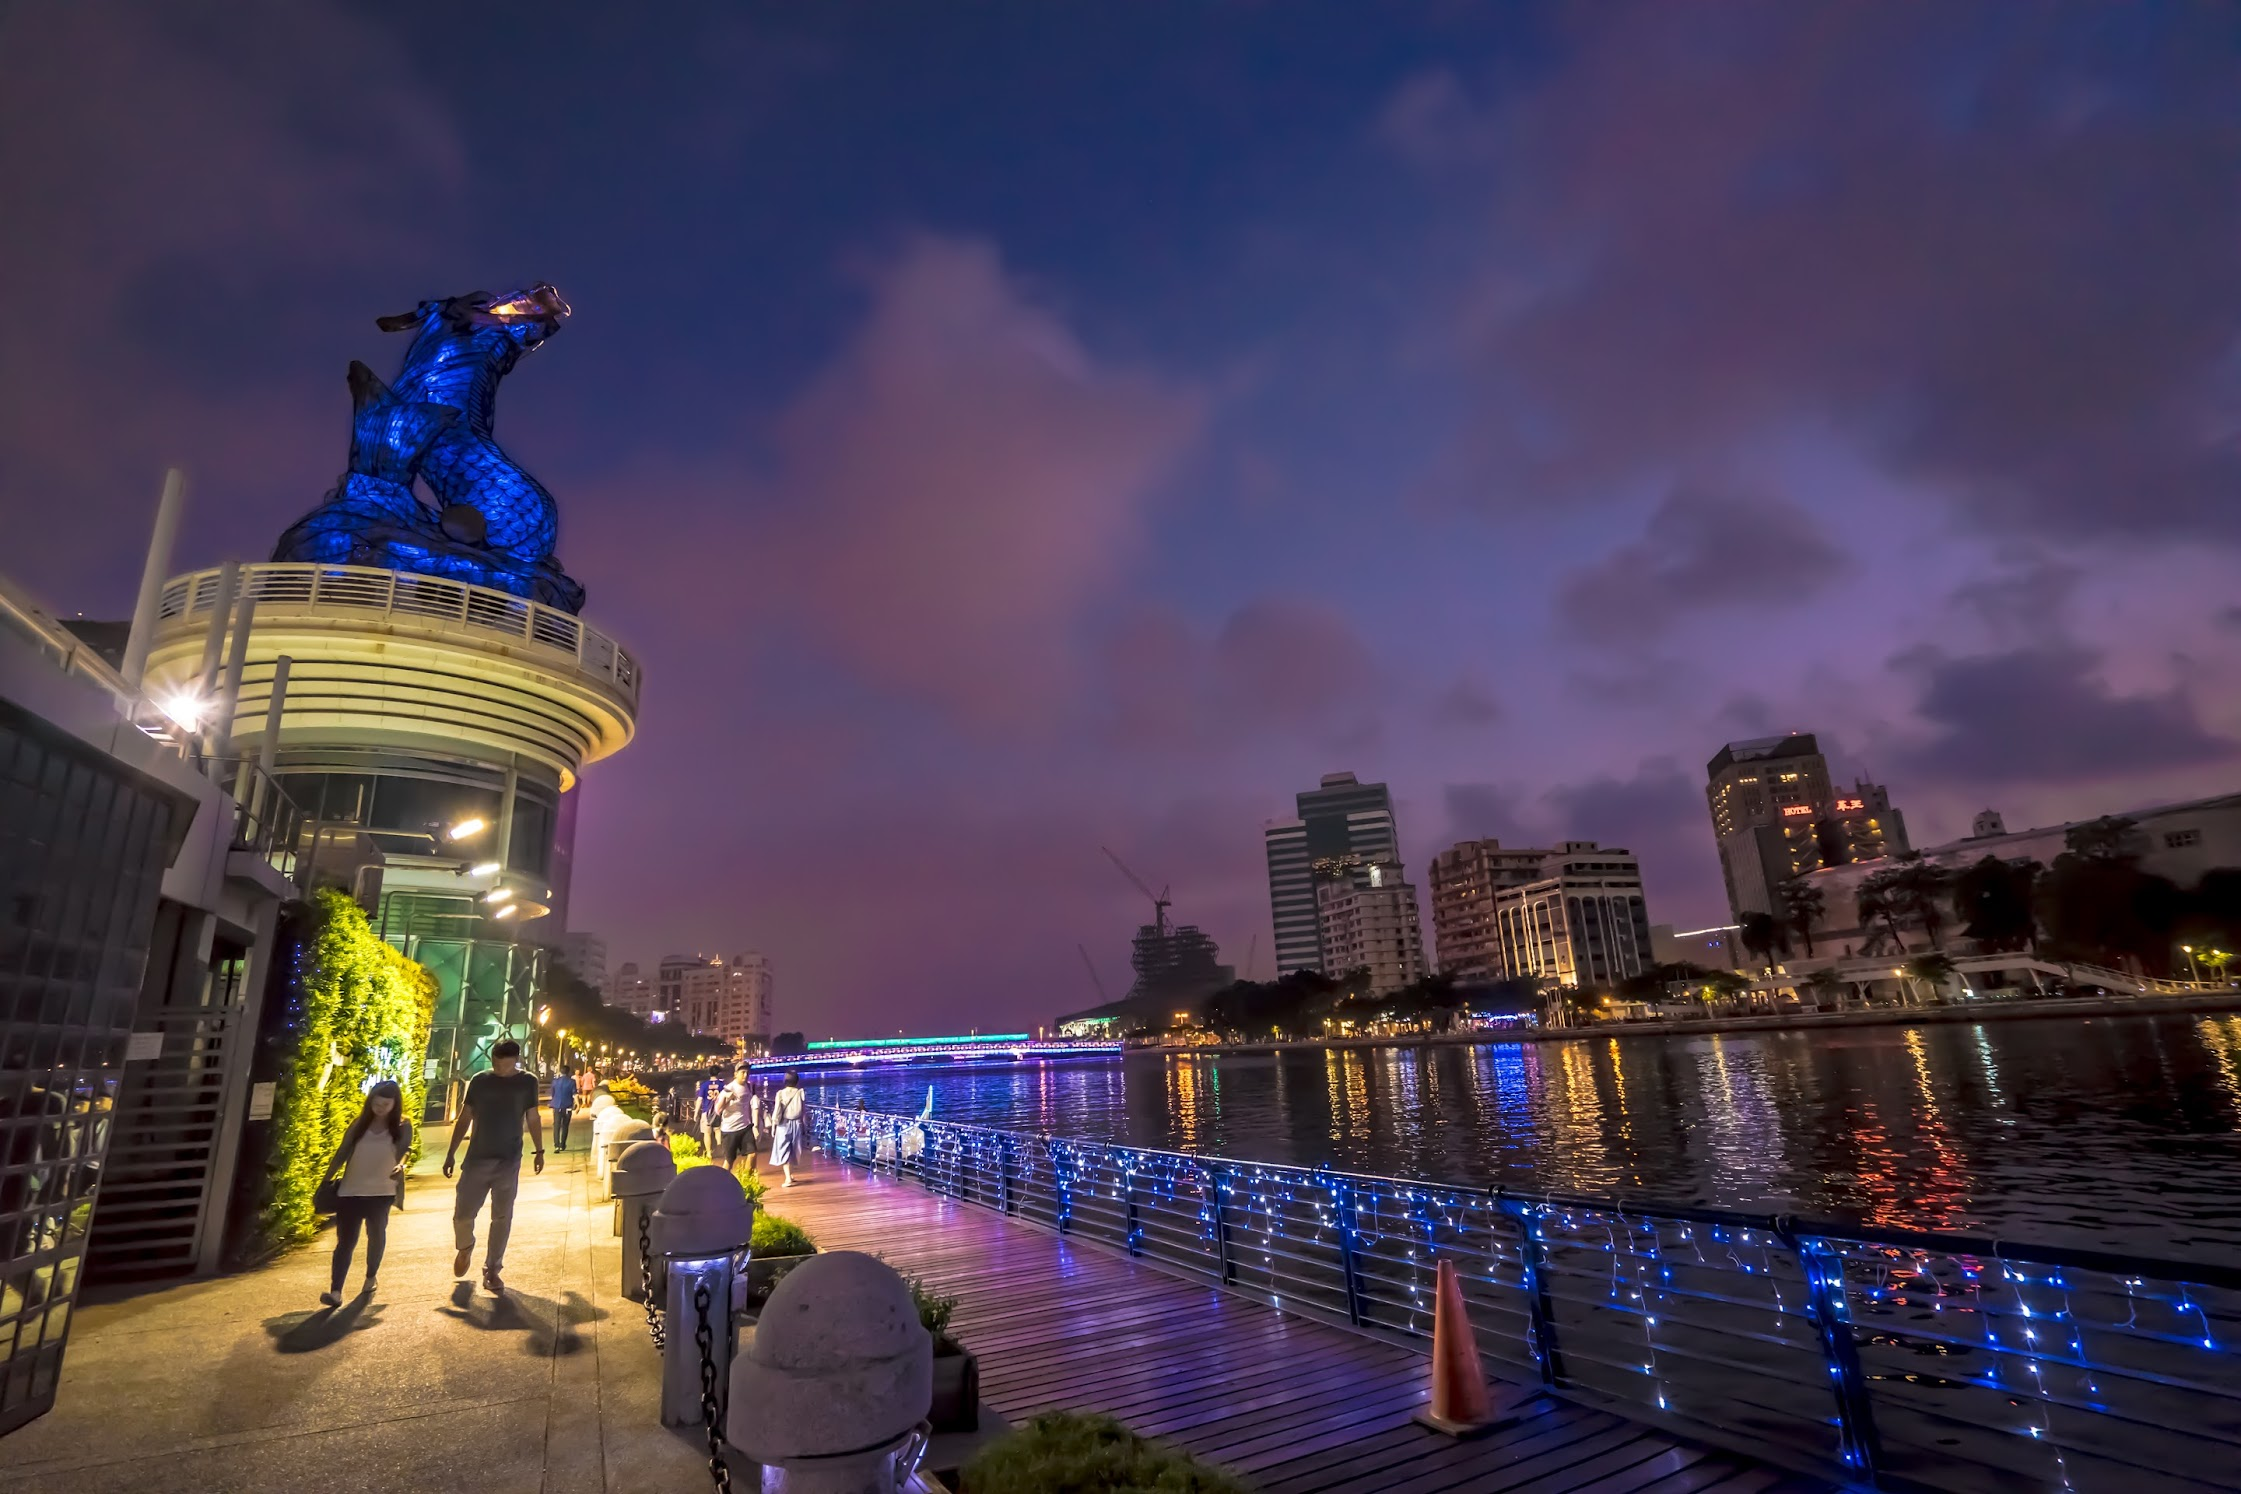 Taiwan Kaohsiung Love River light-up3